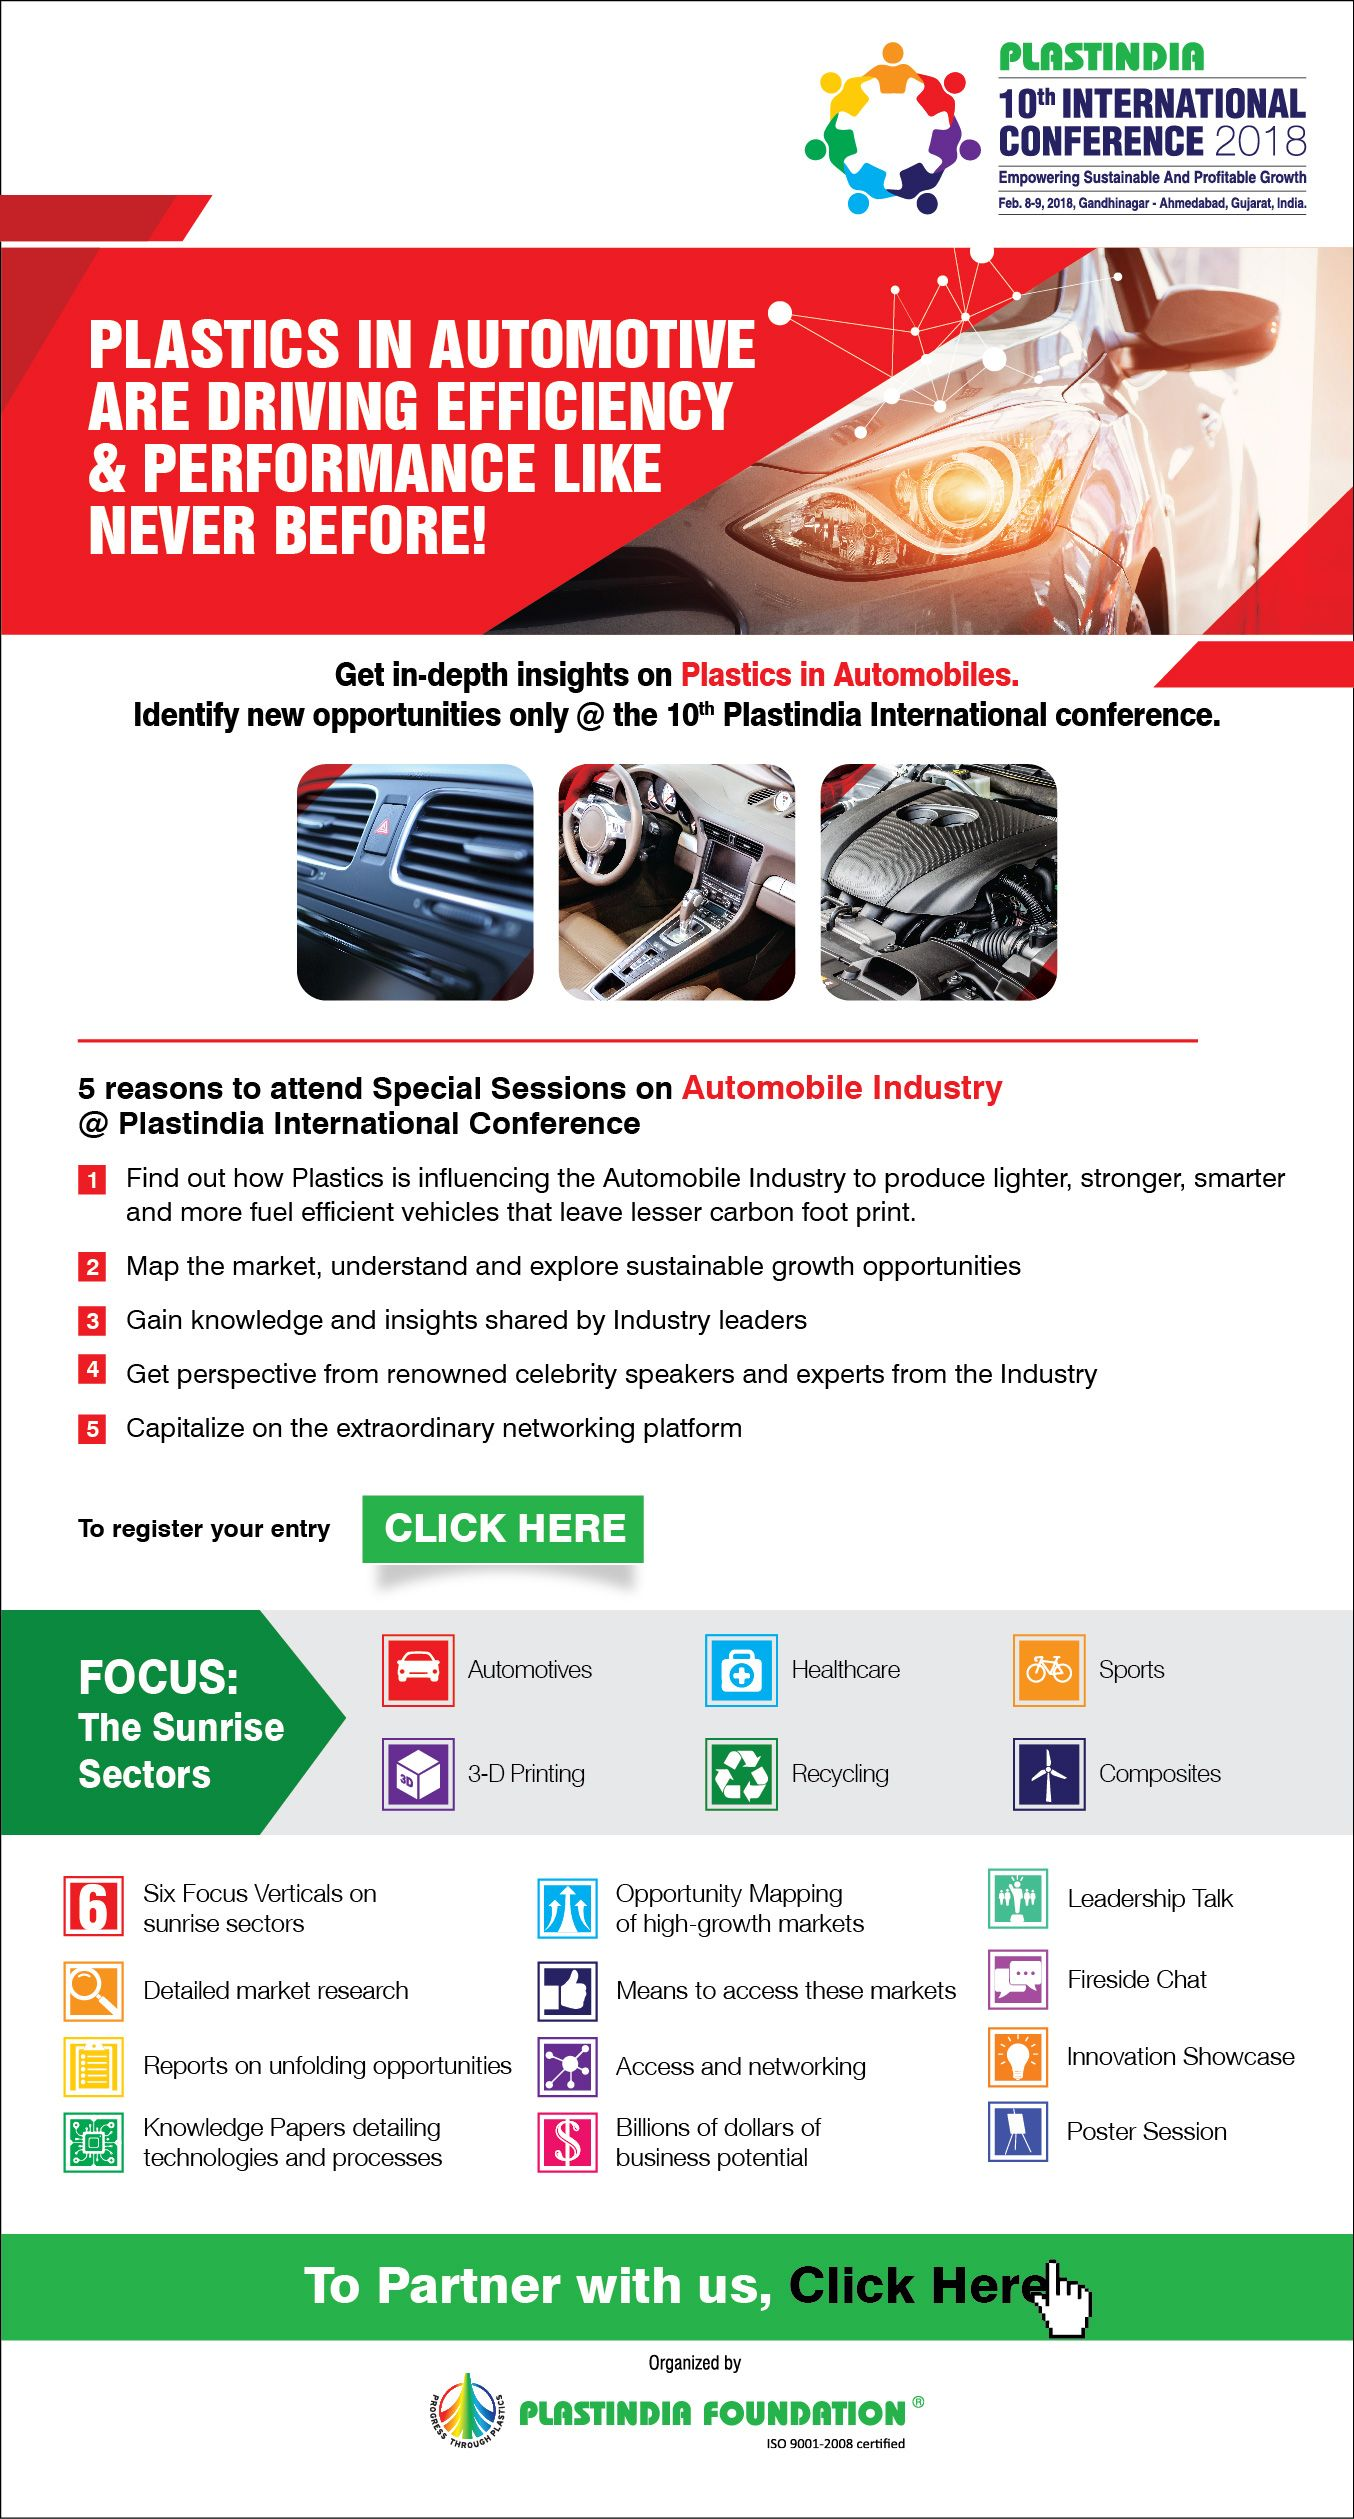 Attend Special Sessions on Plastics In Automobiles only at